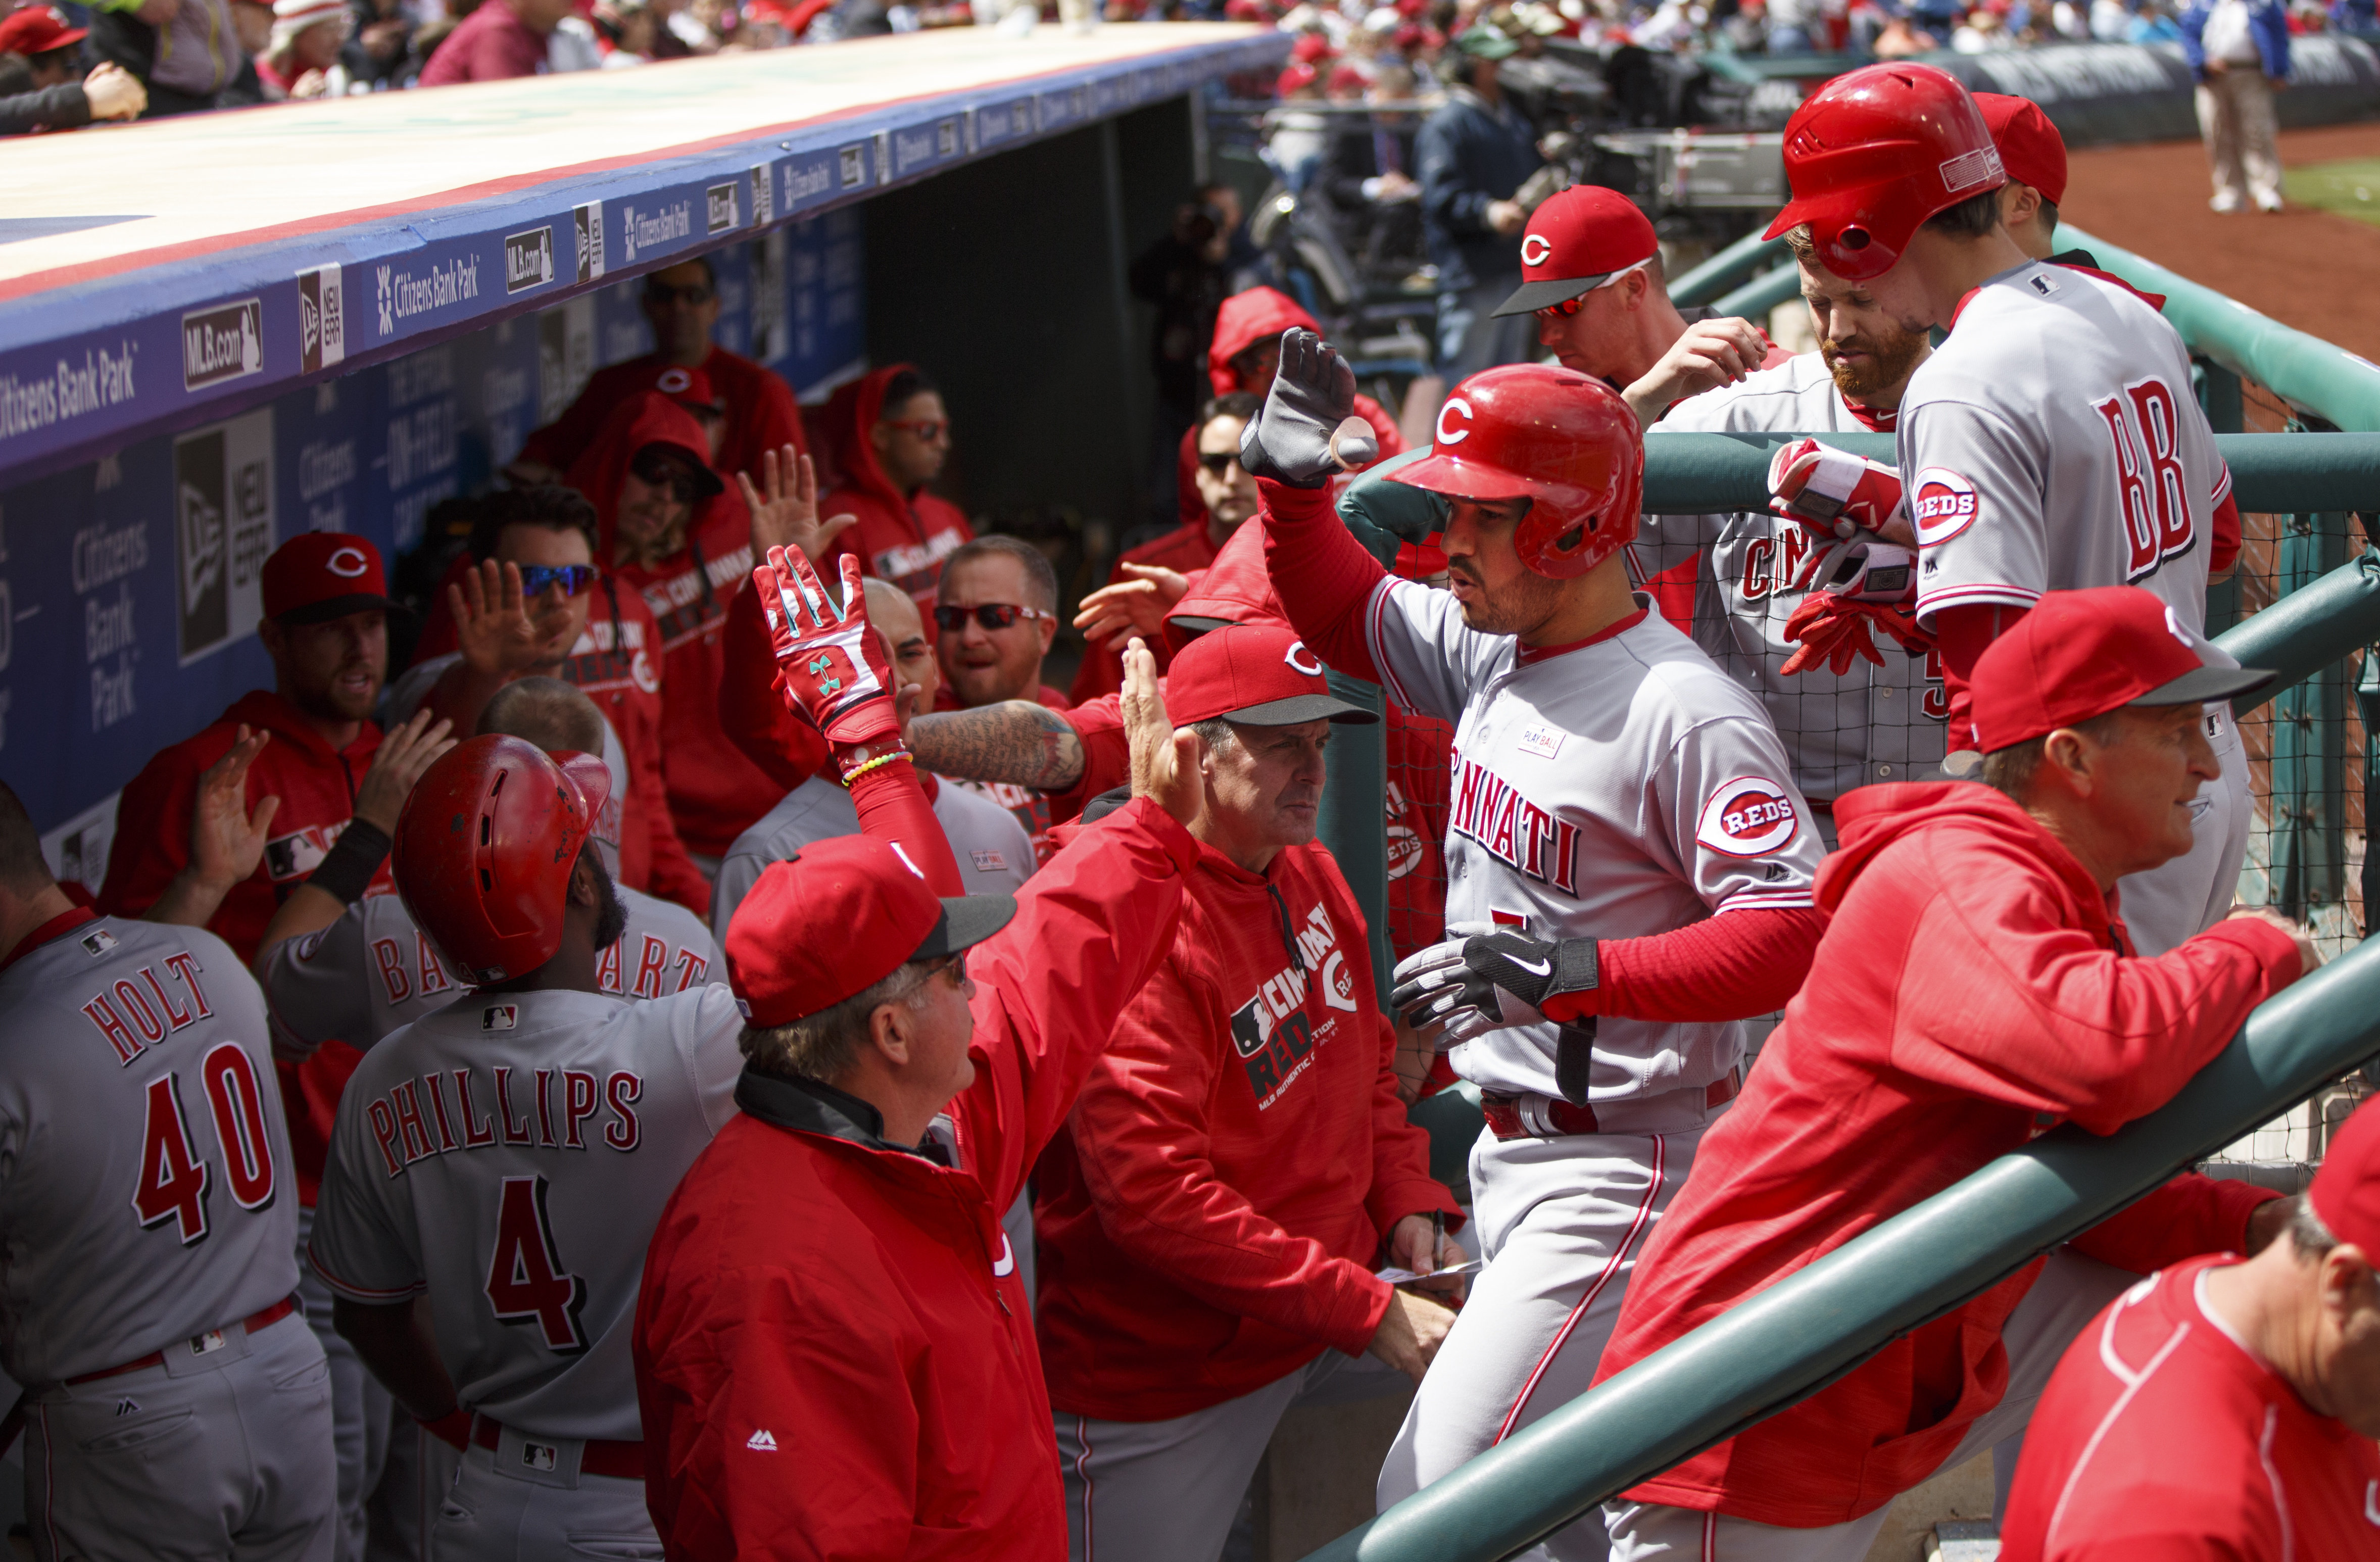 Cincinnati Reds' Eugenio Suarez, center right, celebrates his three-run home run with teammates in the dugout during the fourth inning of a baseball game against the Philadelphia Phillies, Sunday, May 15, 2016, in Philadelphia. (AP Photo/Chris Szagola)